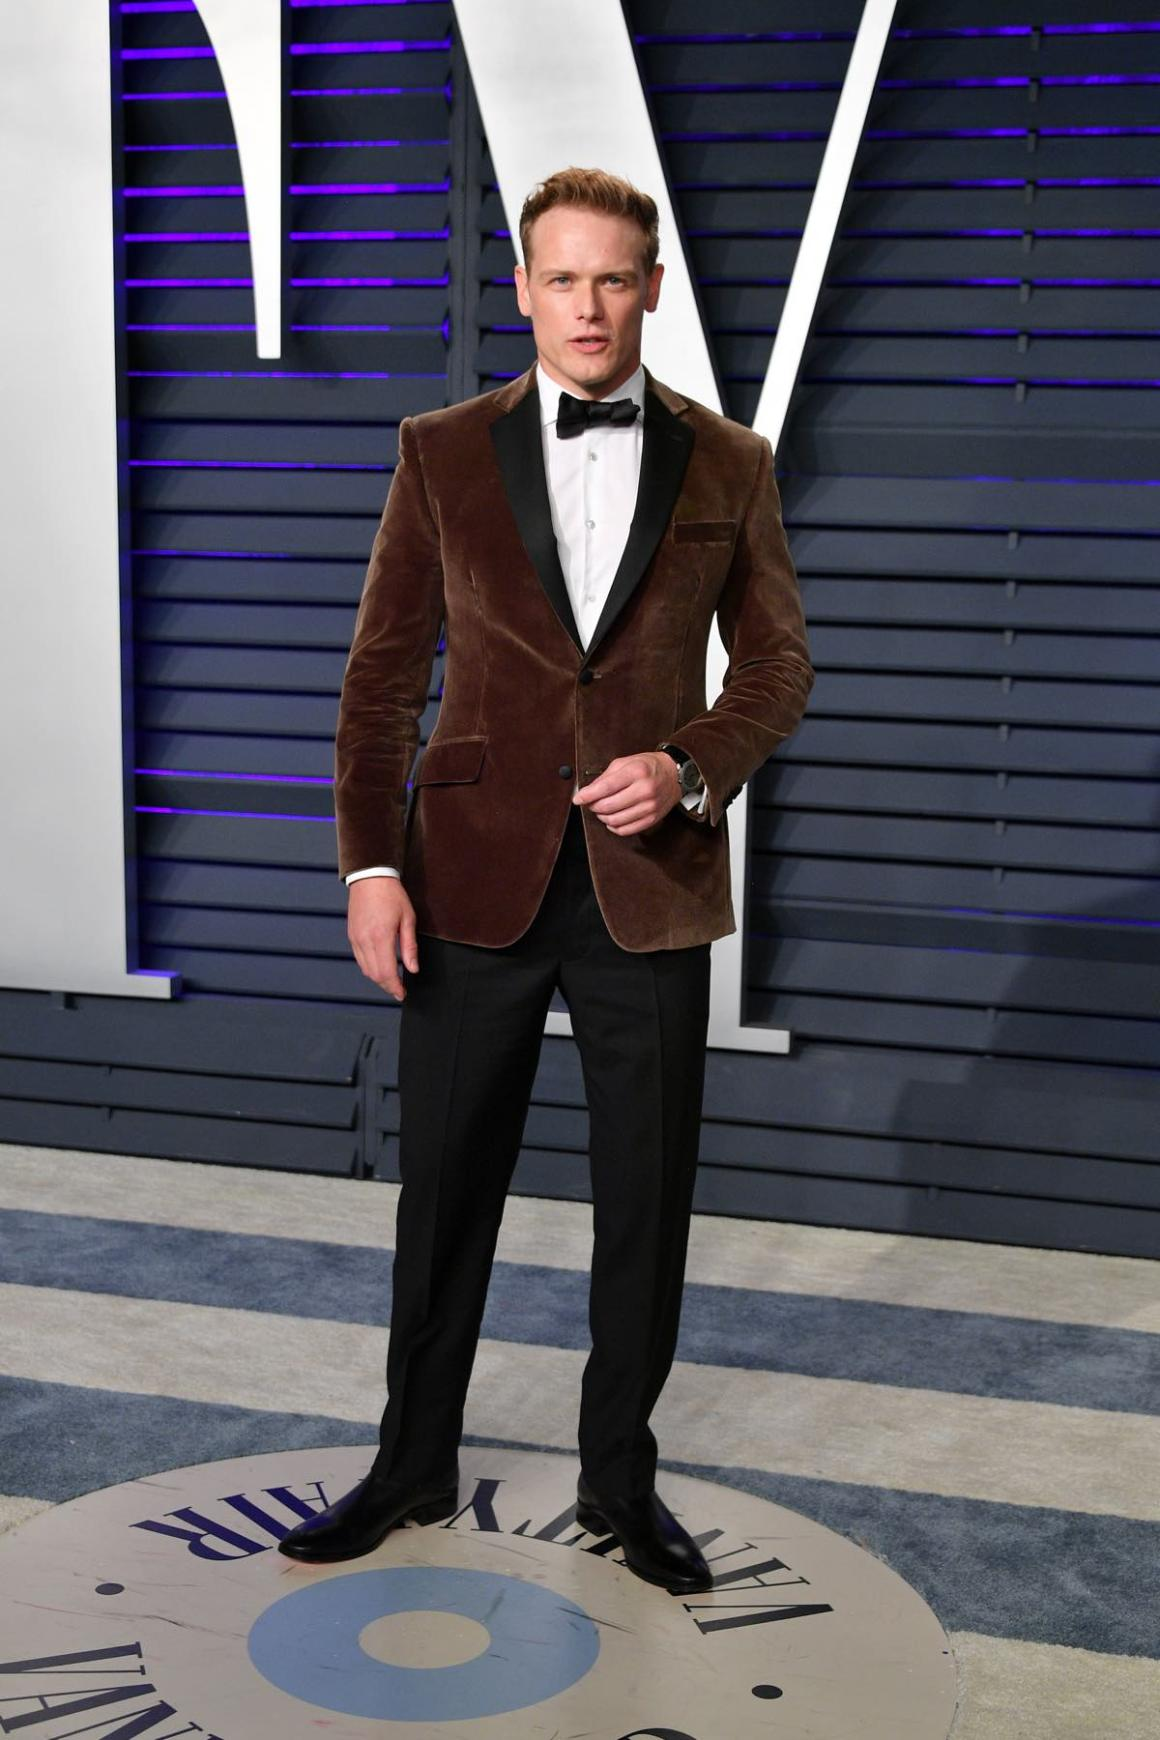 Sam Heughan attends the 2019 Vanity Fair Oscar Party Hosted By Radhika Jones - Arrivals